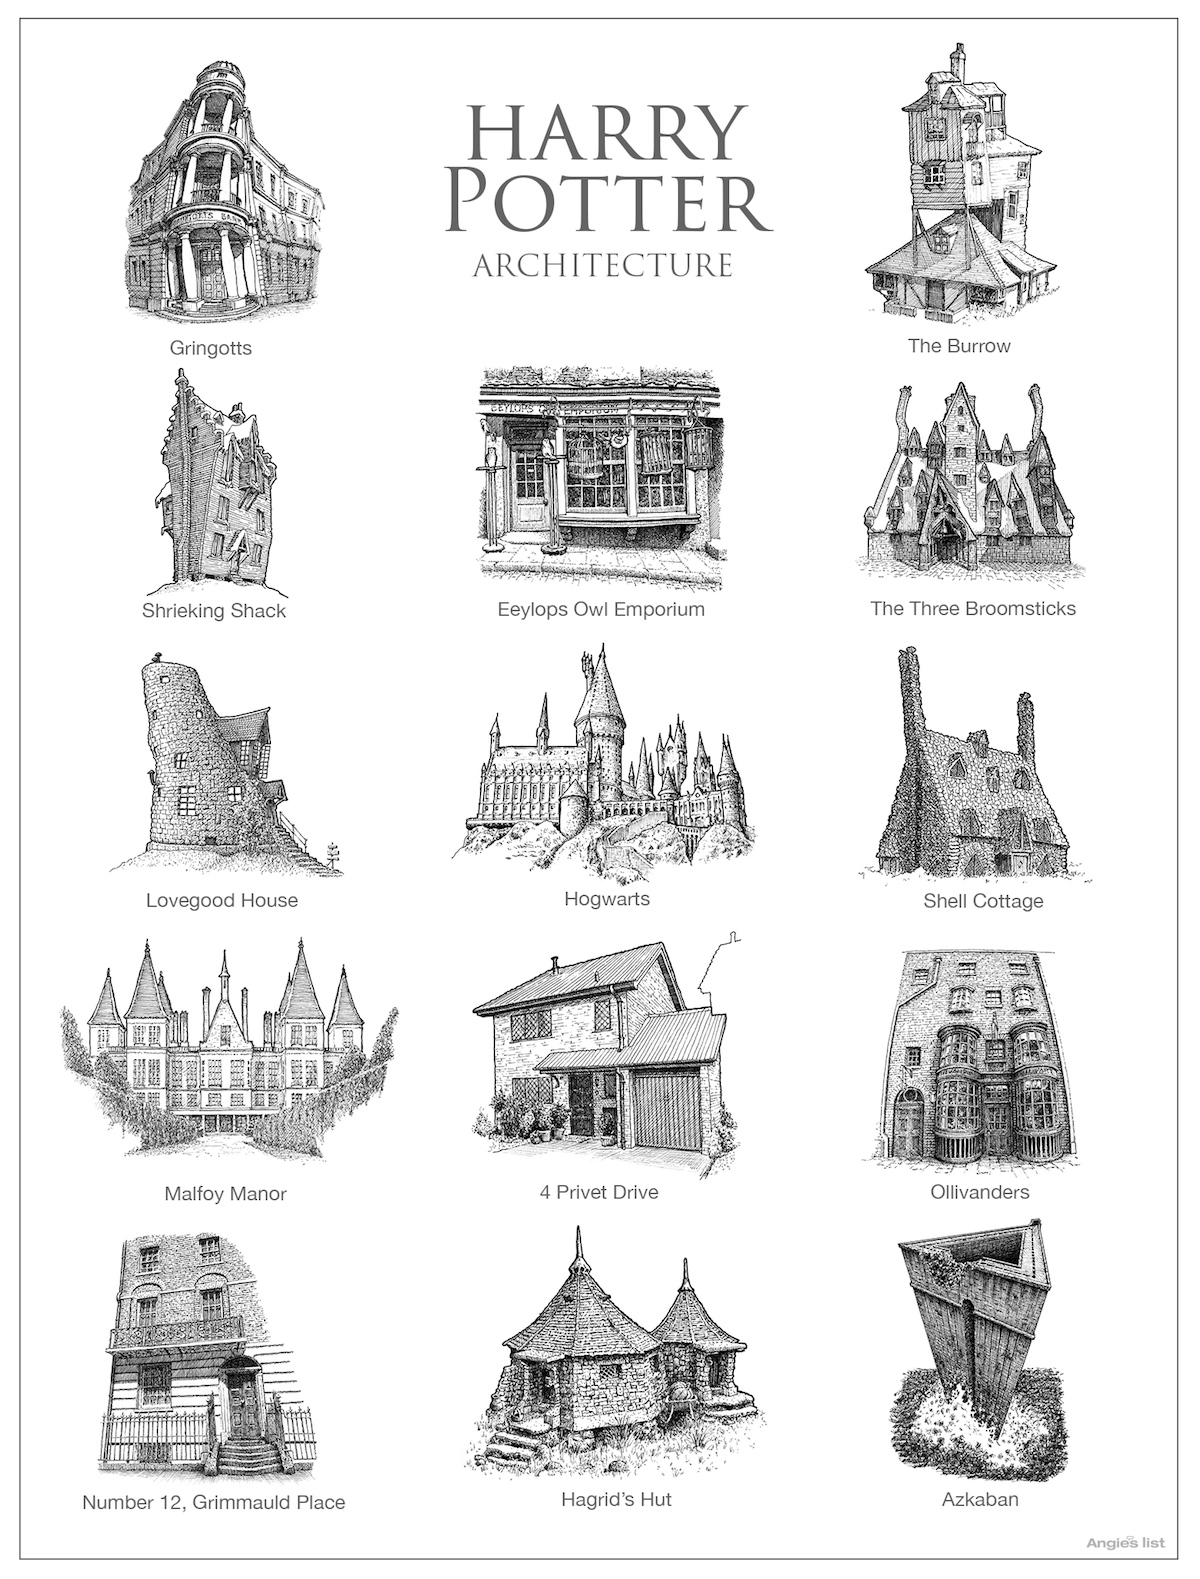 Harry Potter Architecture